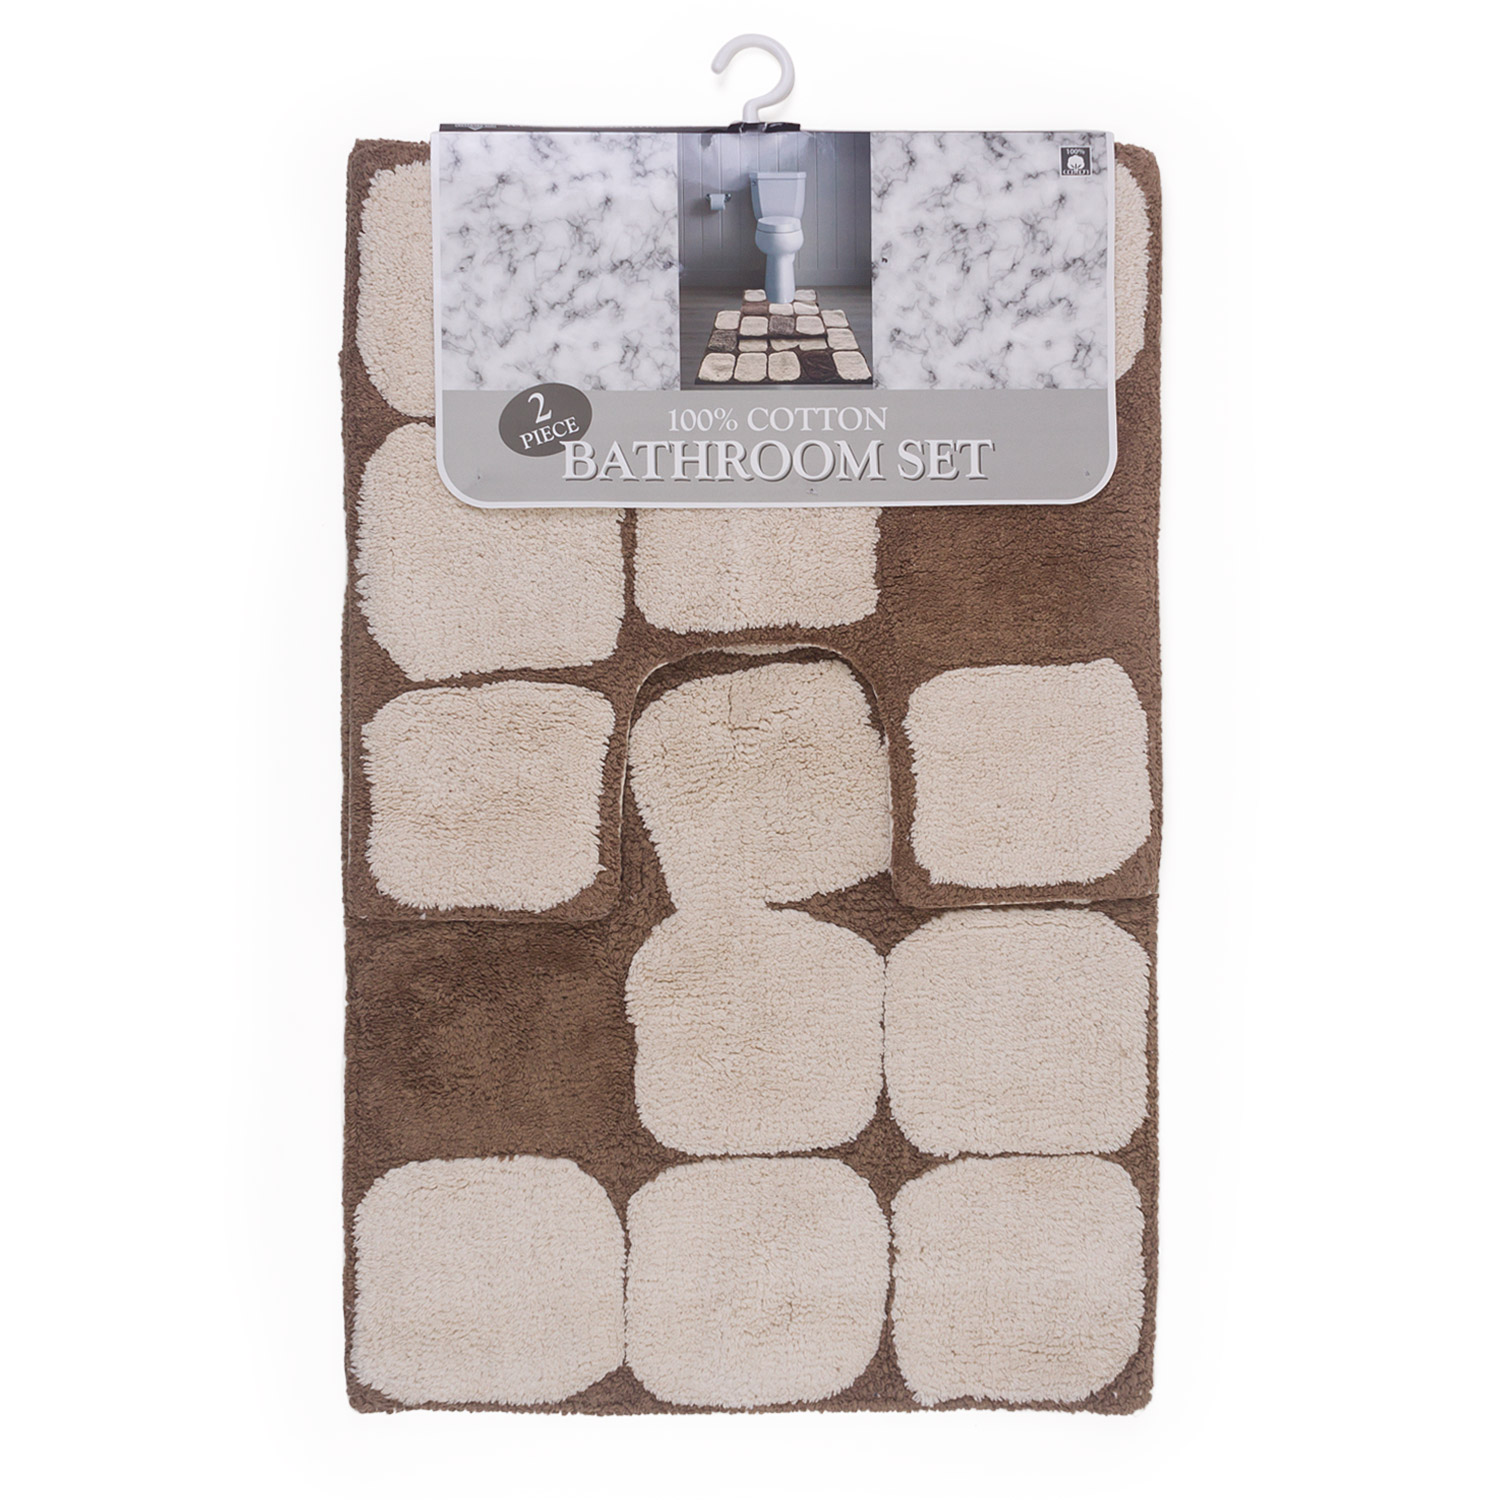 Pebble 2 Piece Cotton Bath Set